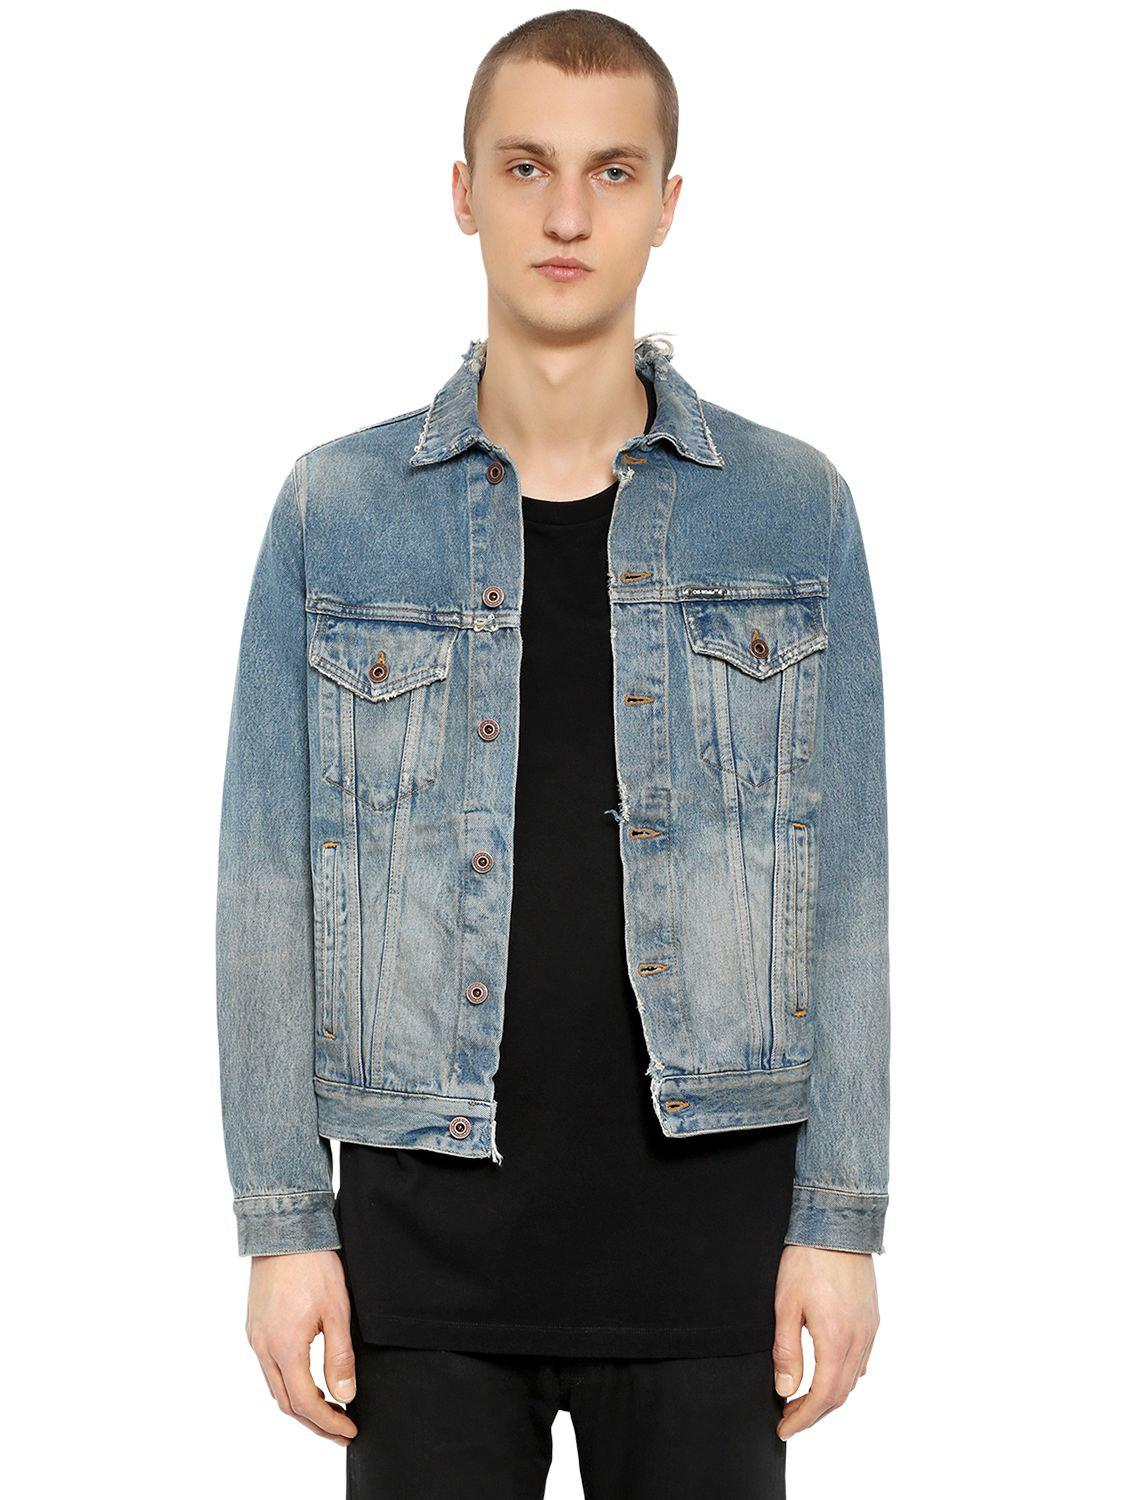 96448a856e00 Off-White c o Virgil Abloh Gradient Arrows Denim Jacket in Blue for ...